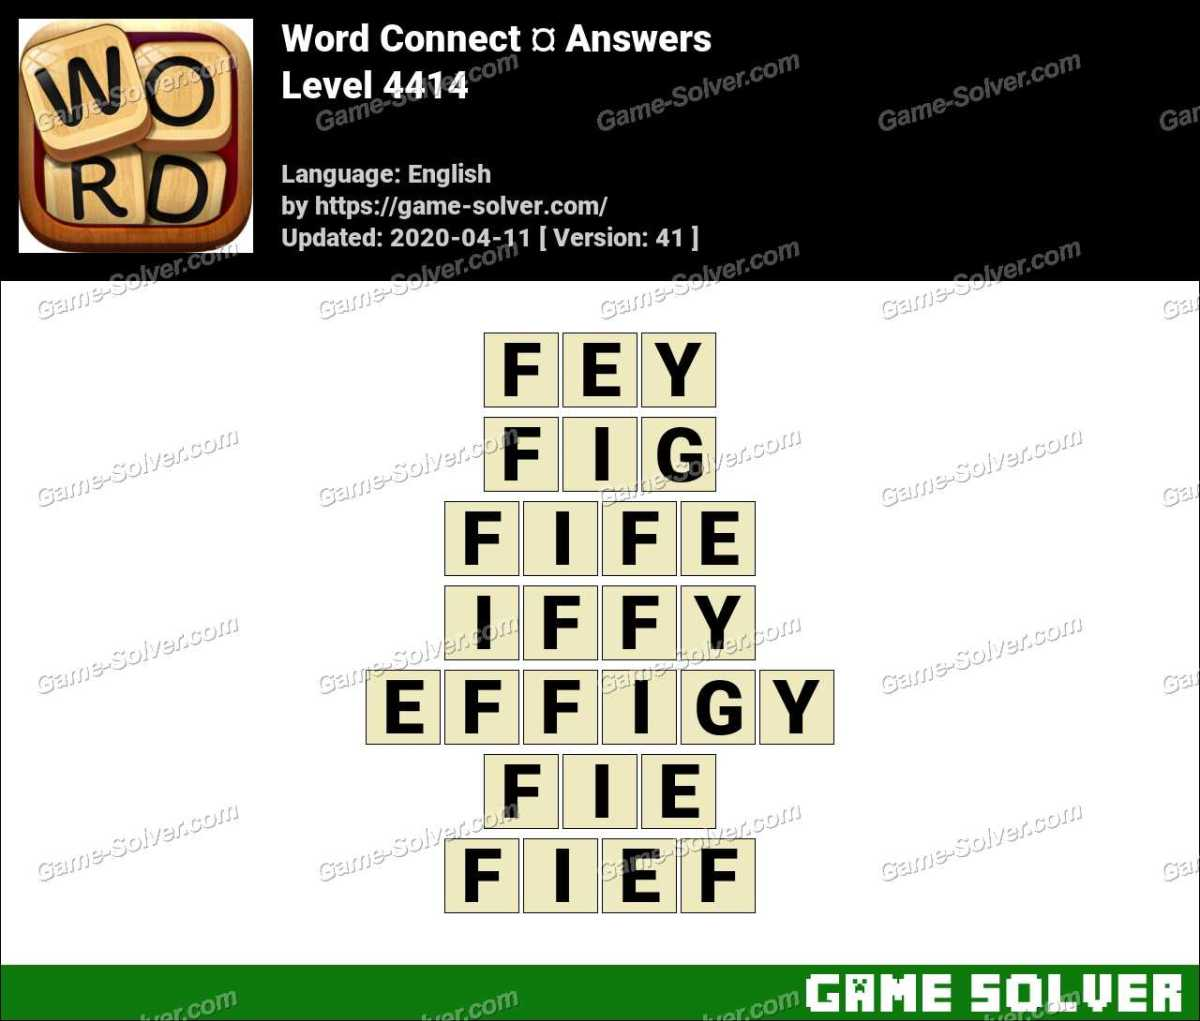 Word Connect Level 4414 Answers